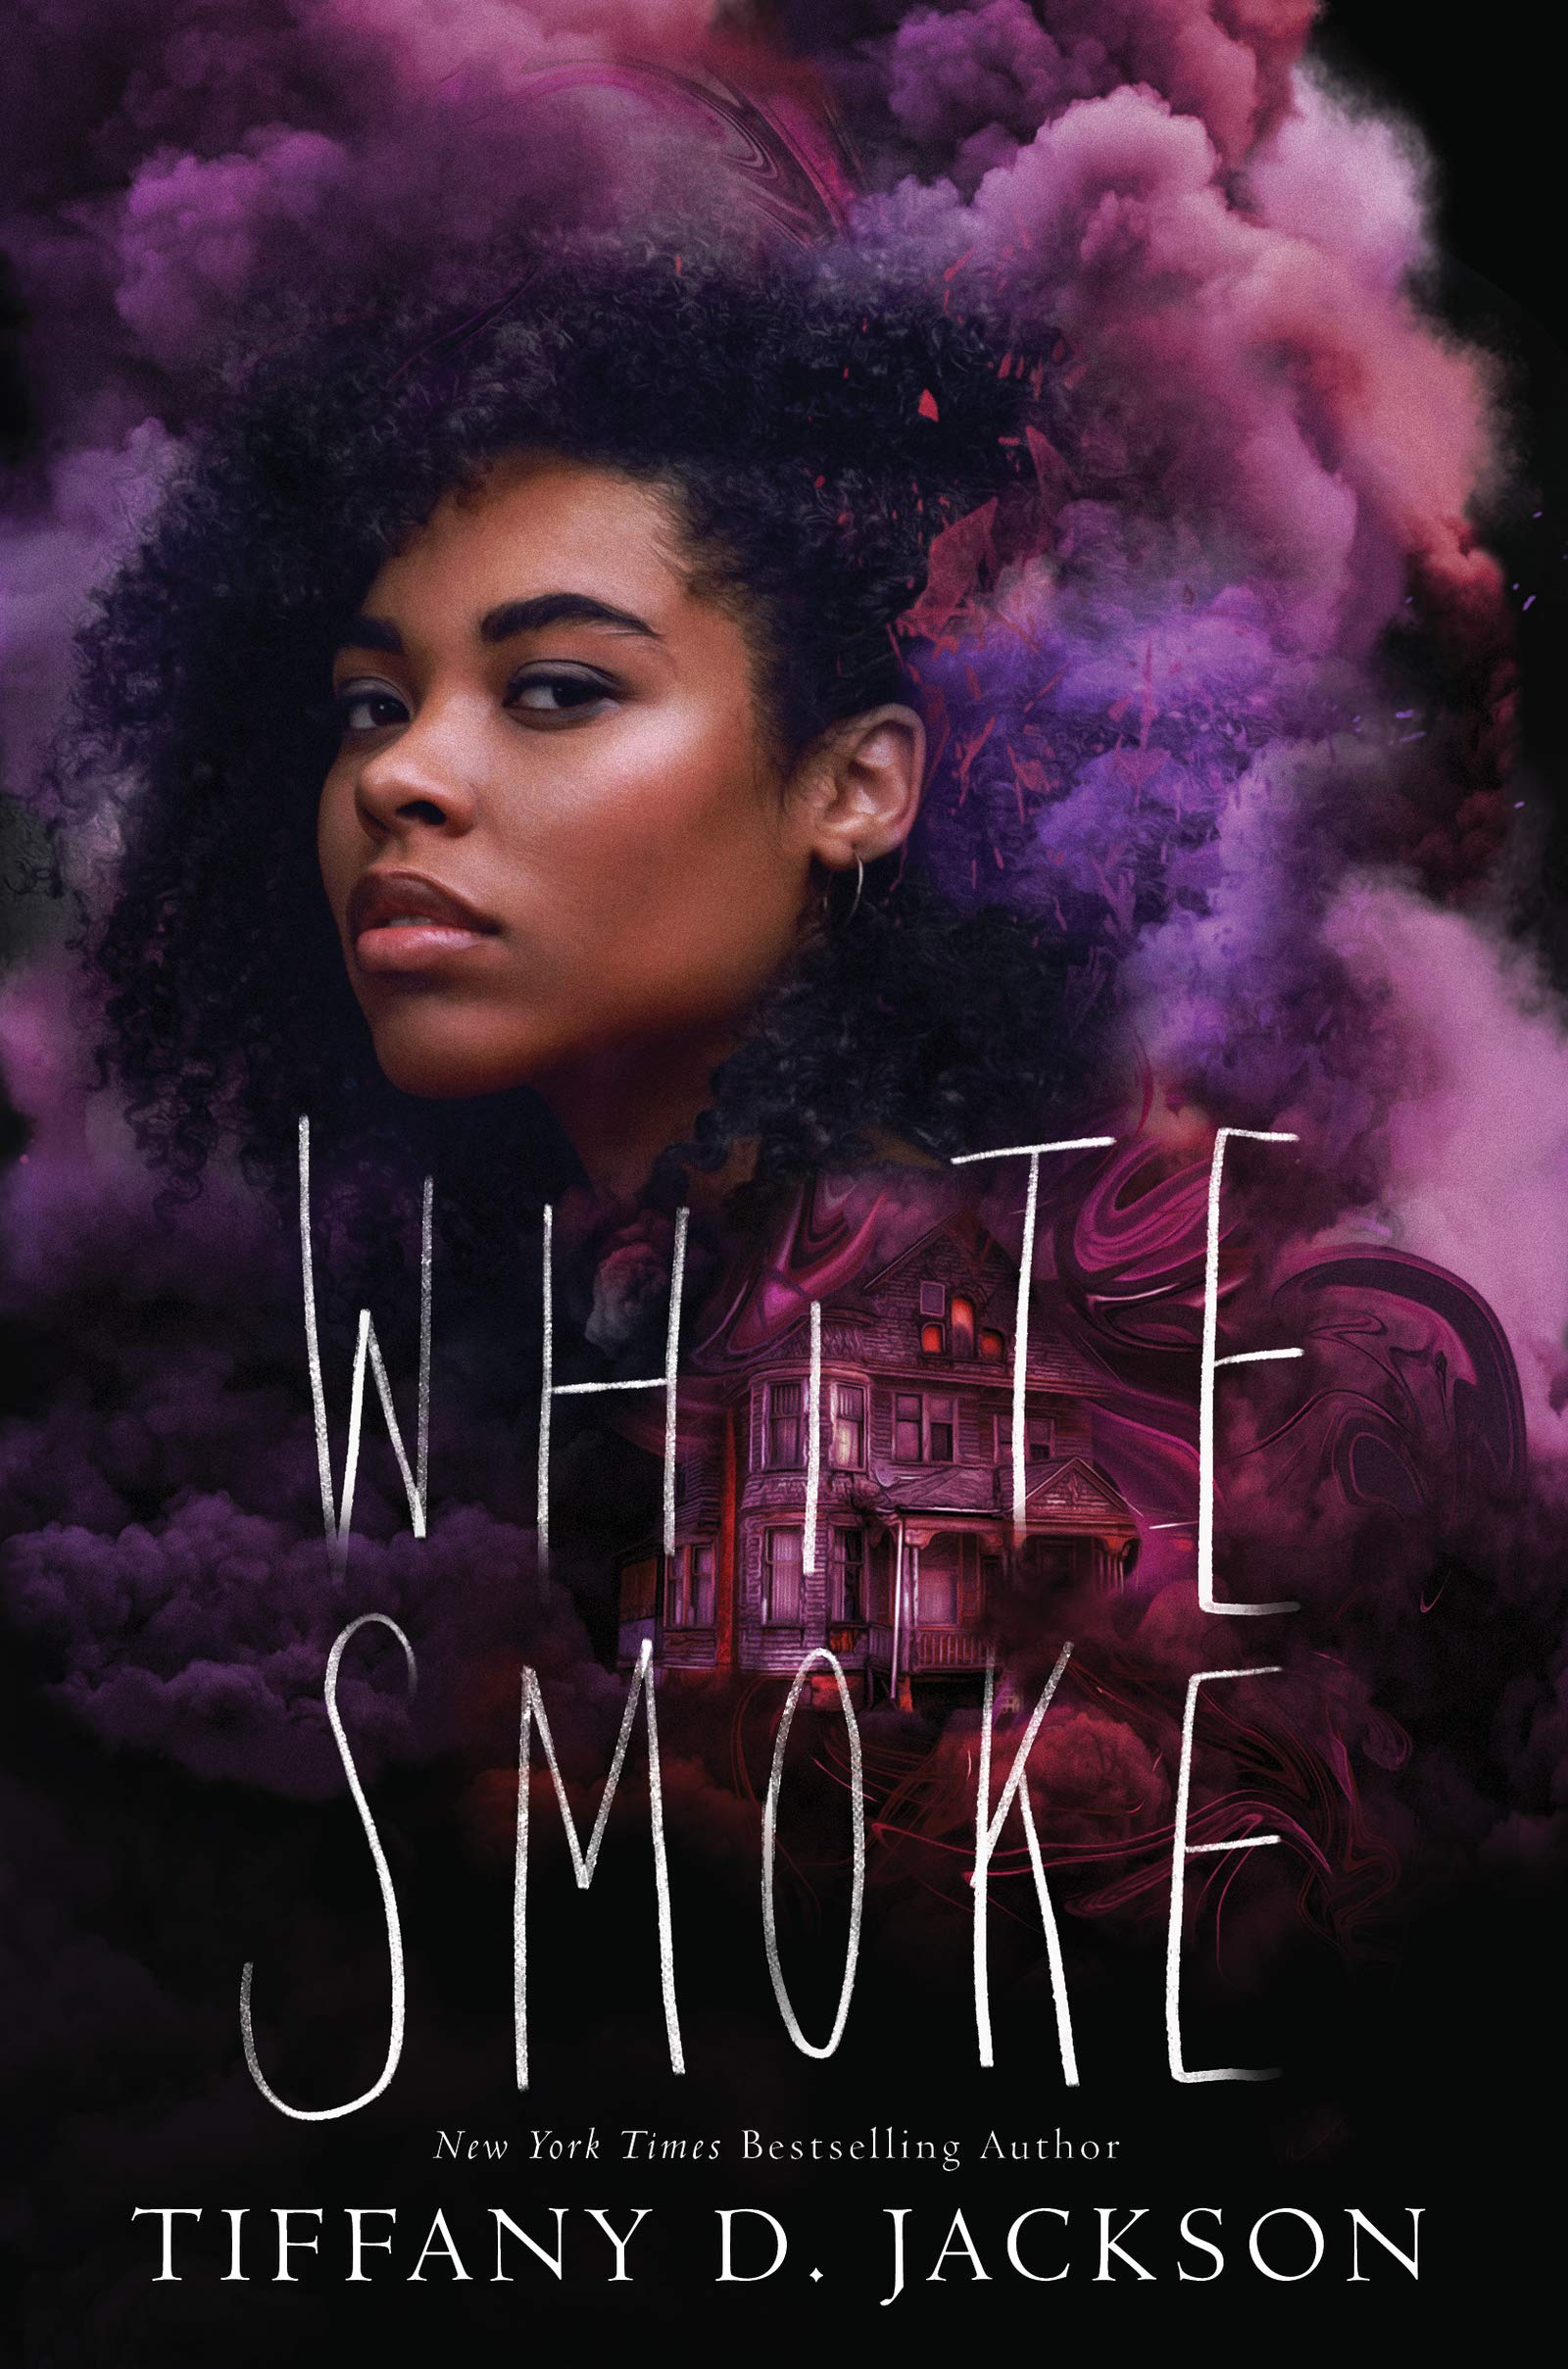 Book cover. Young Black woman staring out from a dark night with smoke around her. There is a large house in the background.